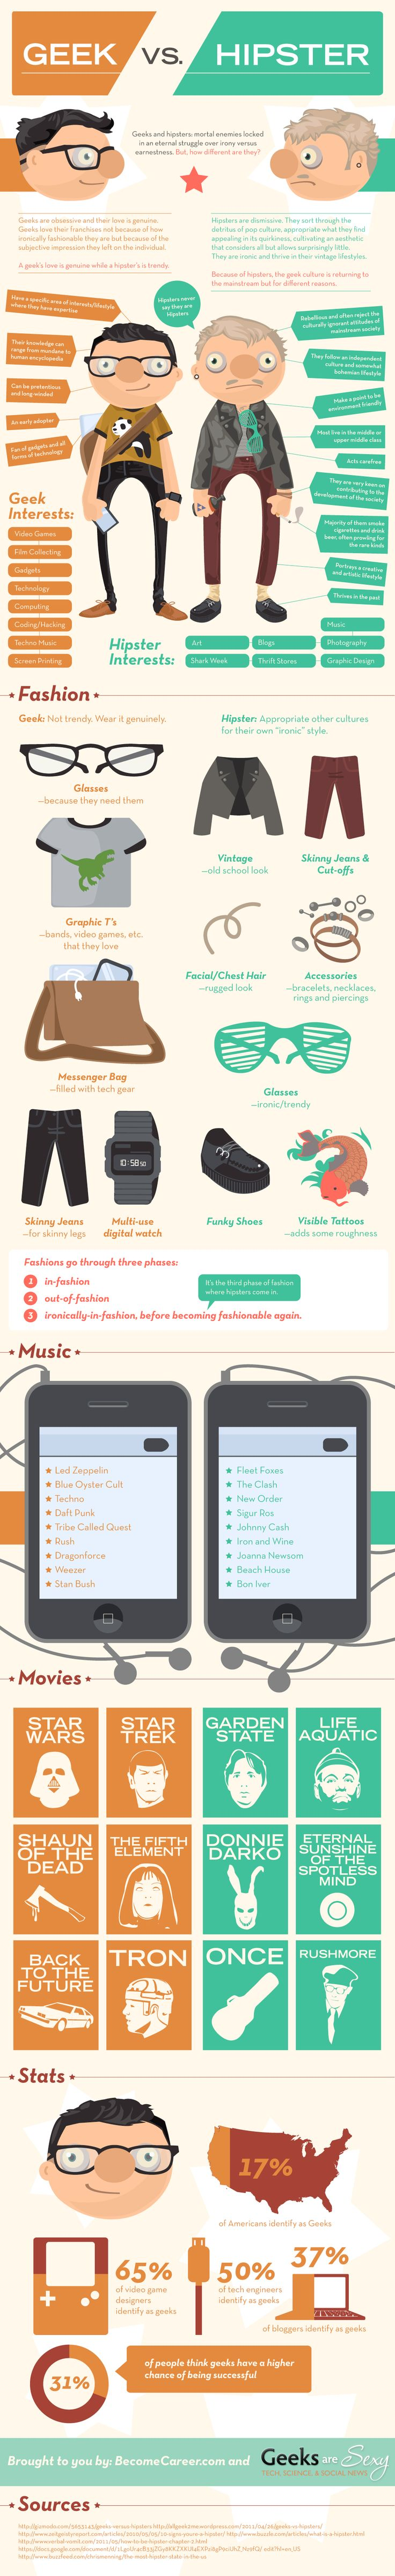 Geeks vs Hipsters. Dunno if I agree with most of it, but it's certainly a conversation starter.